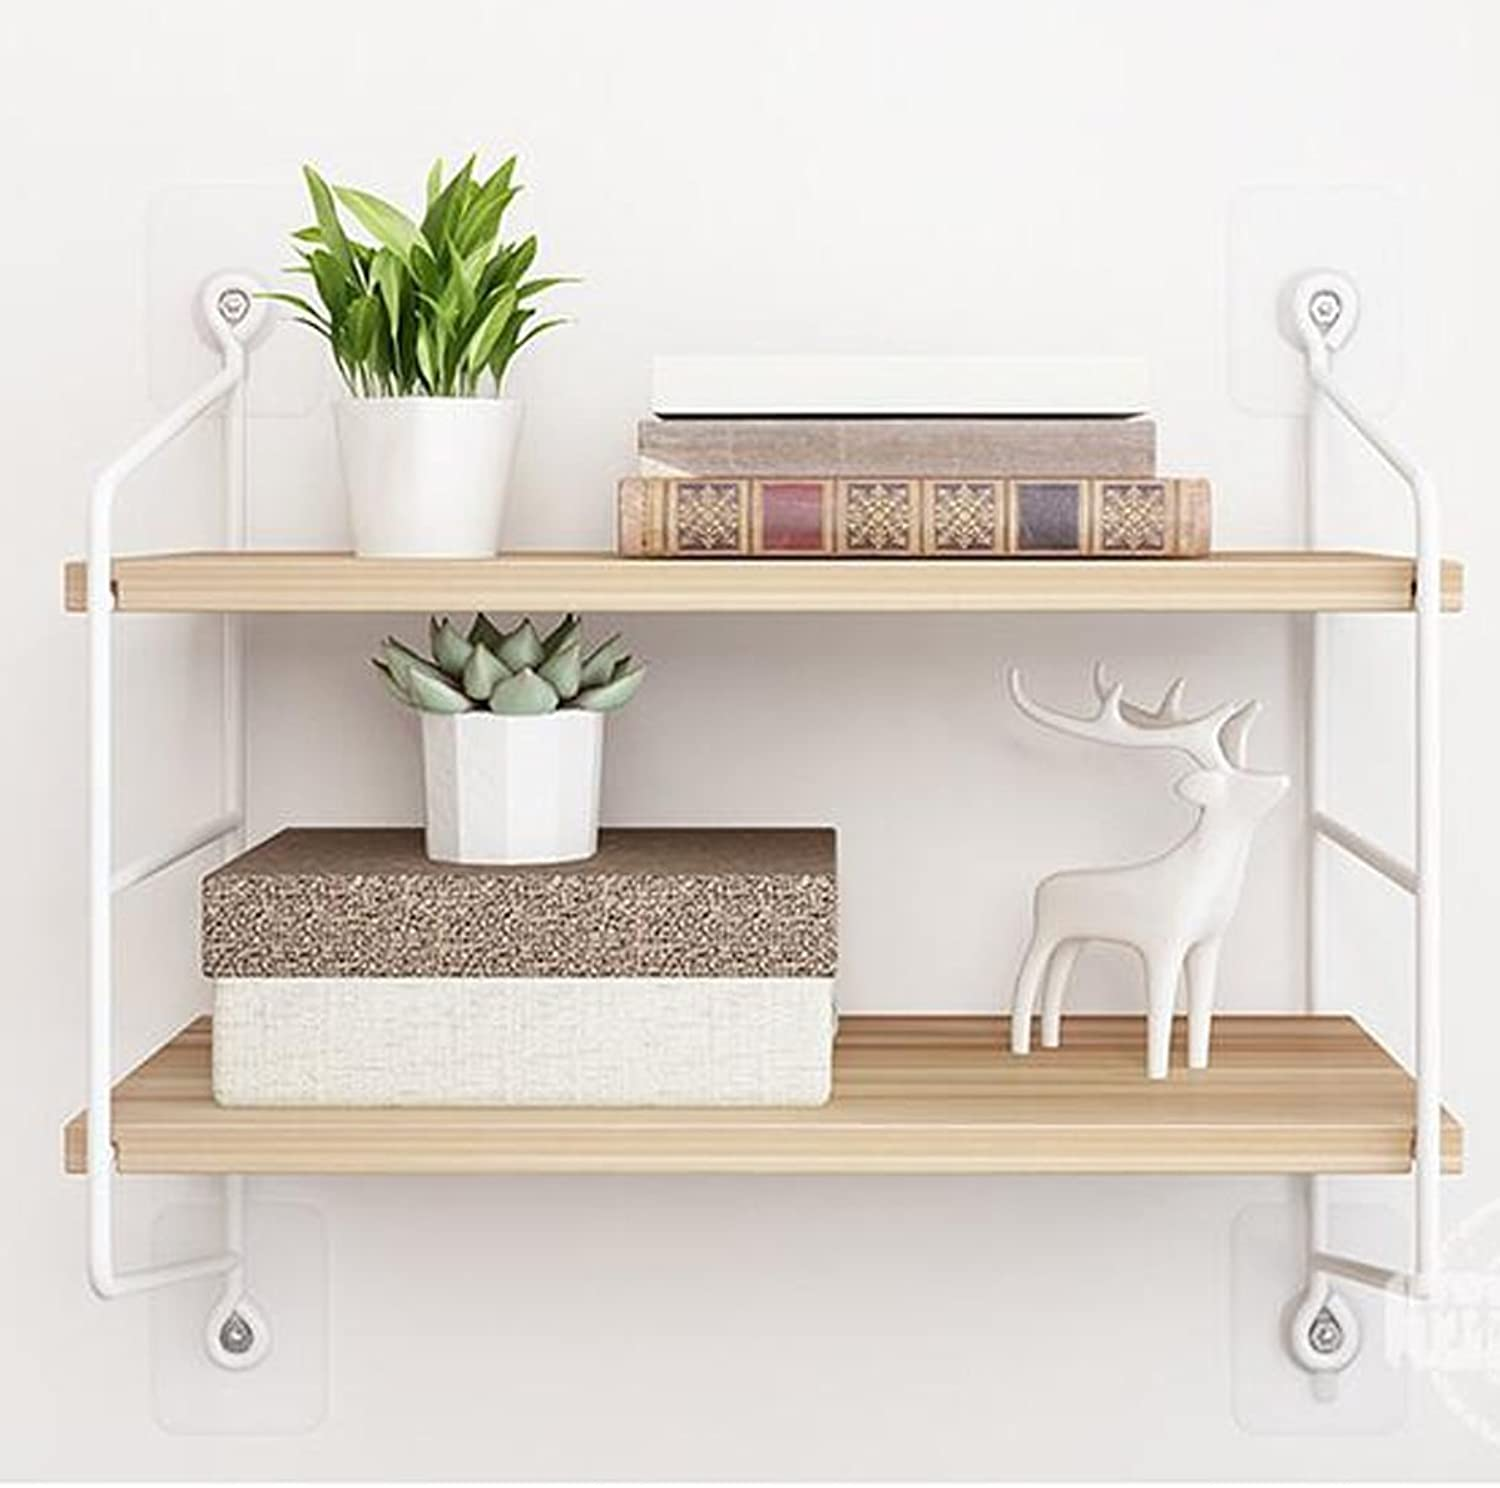 Der Organize Storage cabinets, Punch-Free Wall Racks, Wall partitions, Living Room Wall Storage Racks, Creative Wall Shelves. Storage Shelves